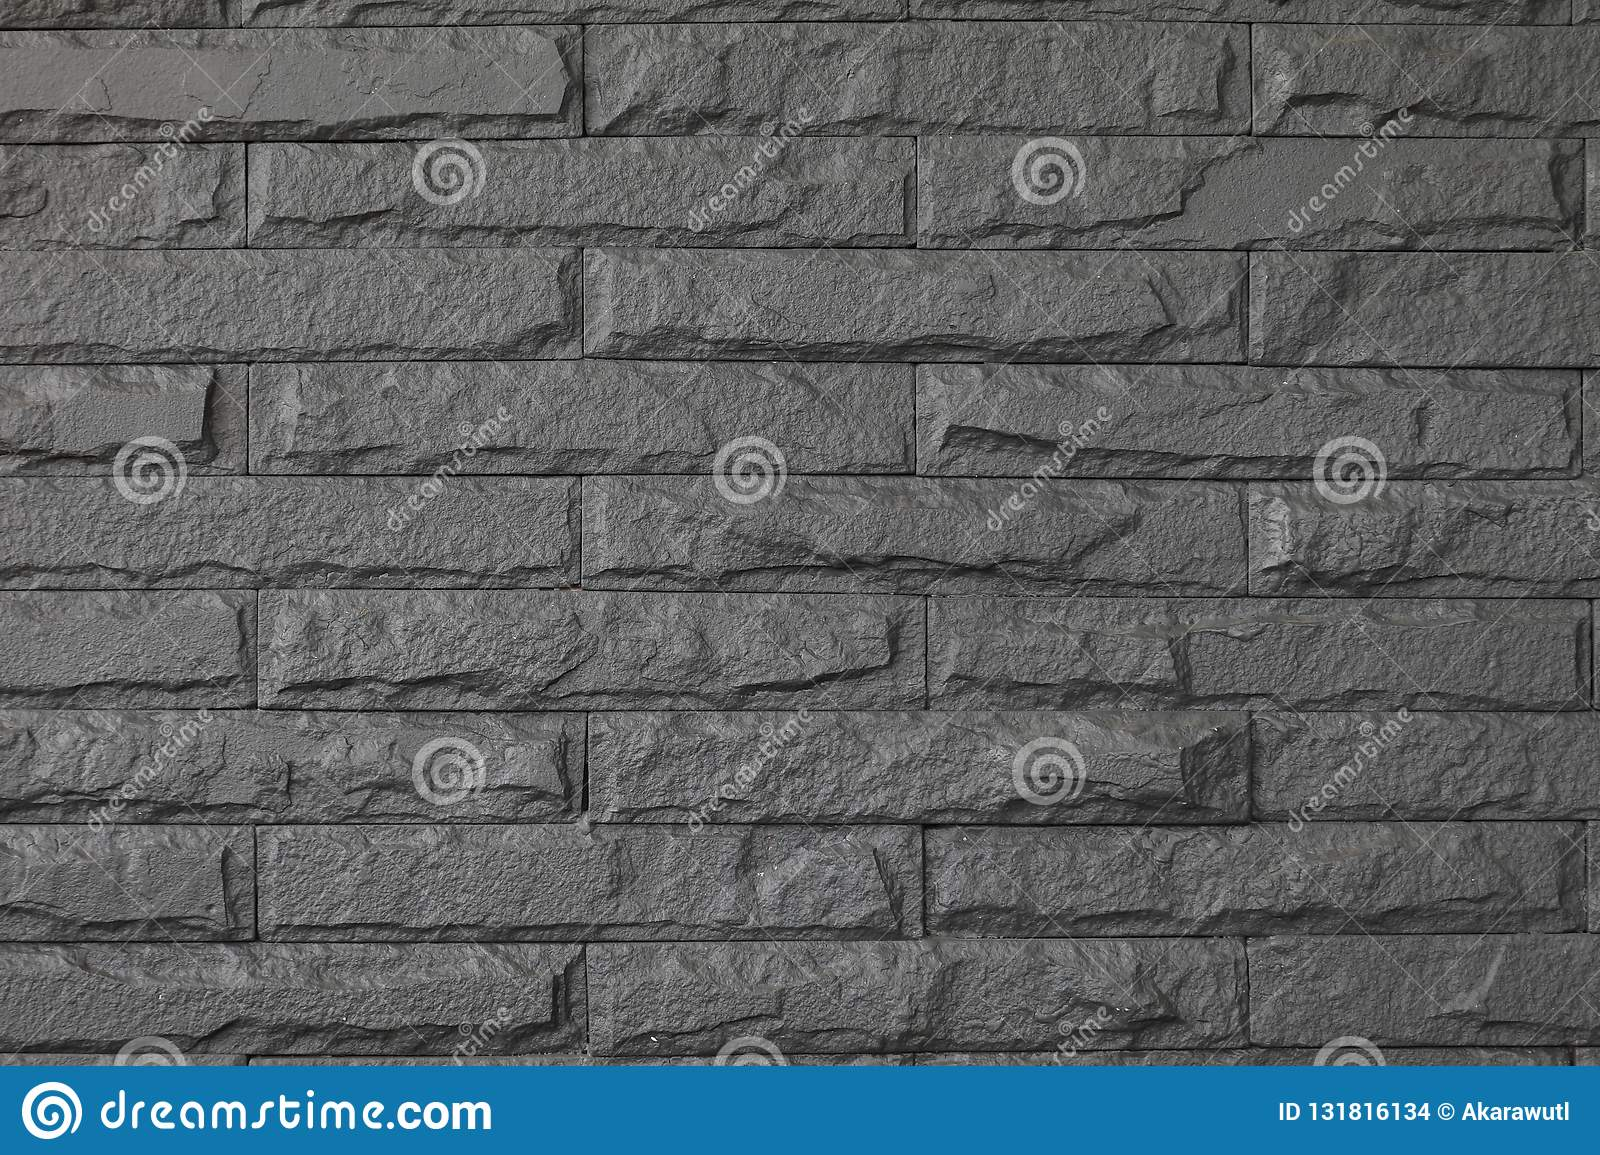 Rustic industrial urban stone walling design wallpaper for artistic background